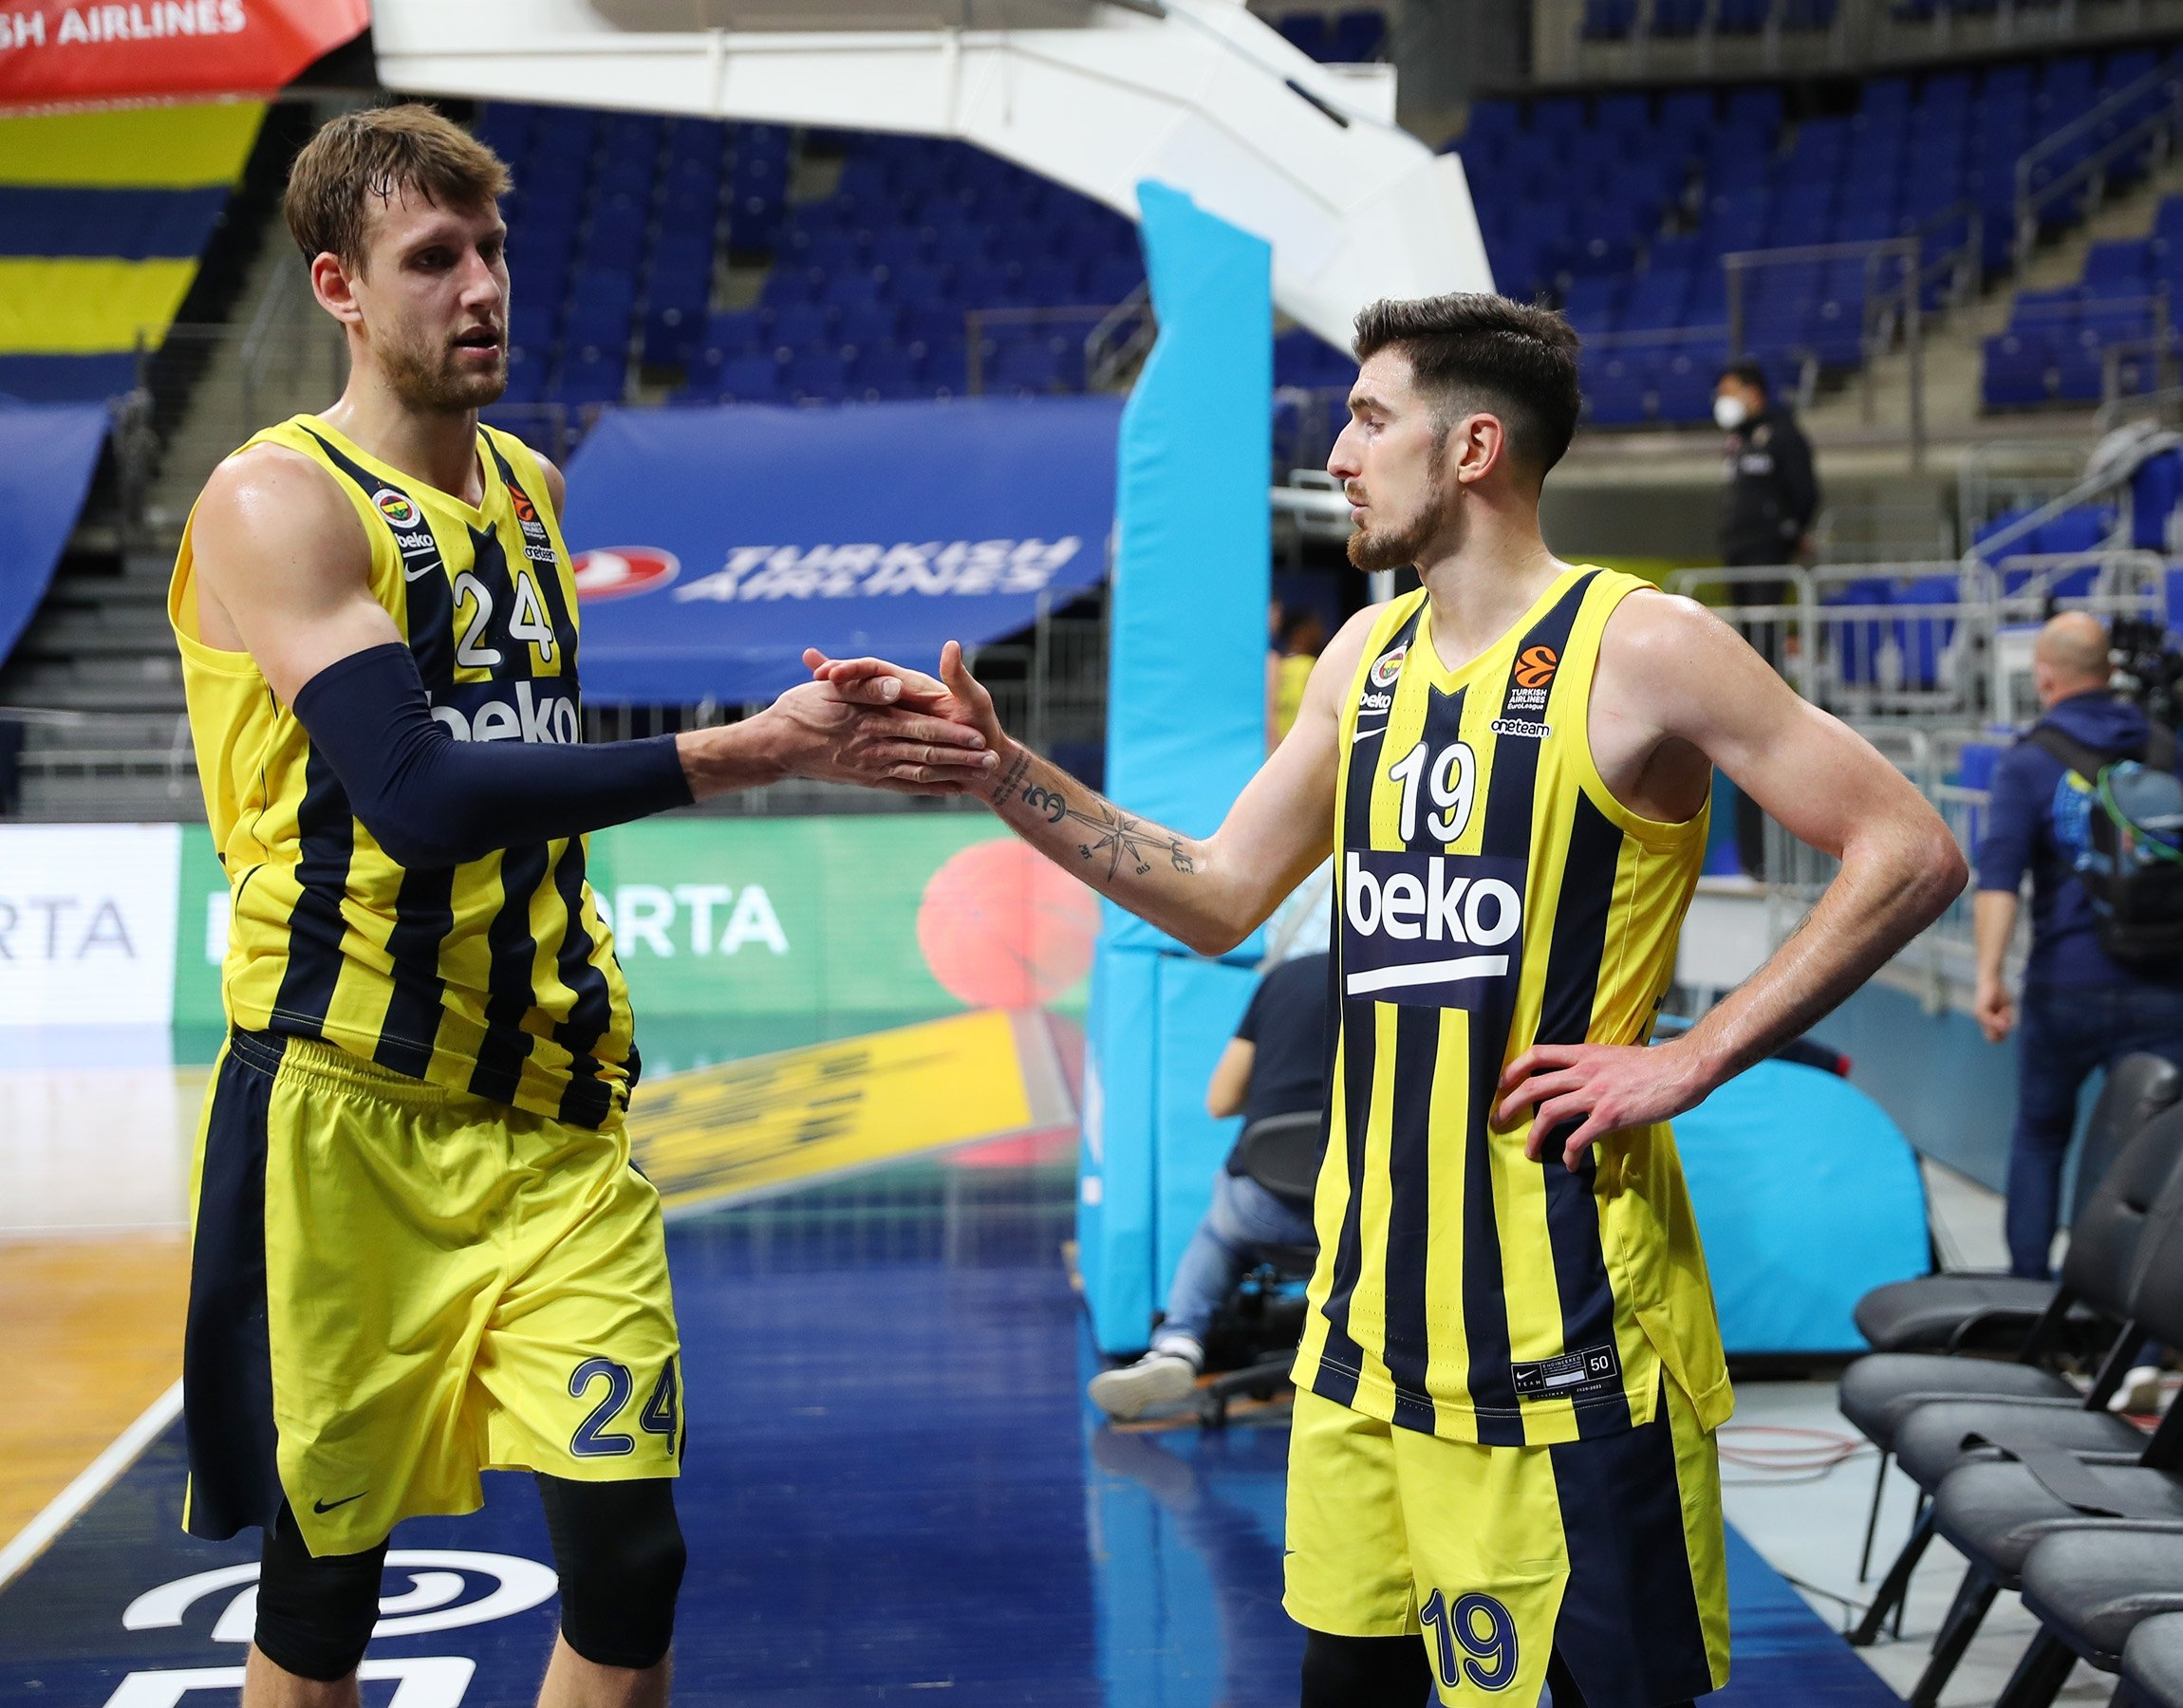 Fenerbahçe'sJan Vesely (L) andNando de Colo celebrate after winning theirTHY EuroLeague Round 32 match against Bayern Munich, in Munich, Germany, March 30, 2021. (DHA Photo)